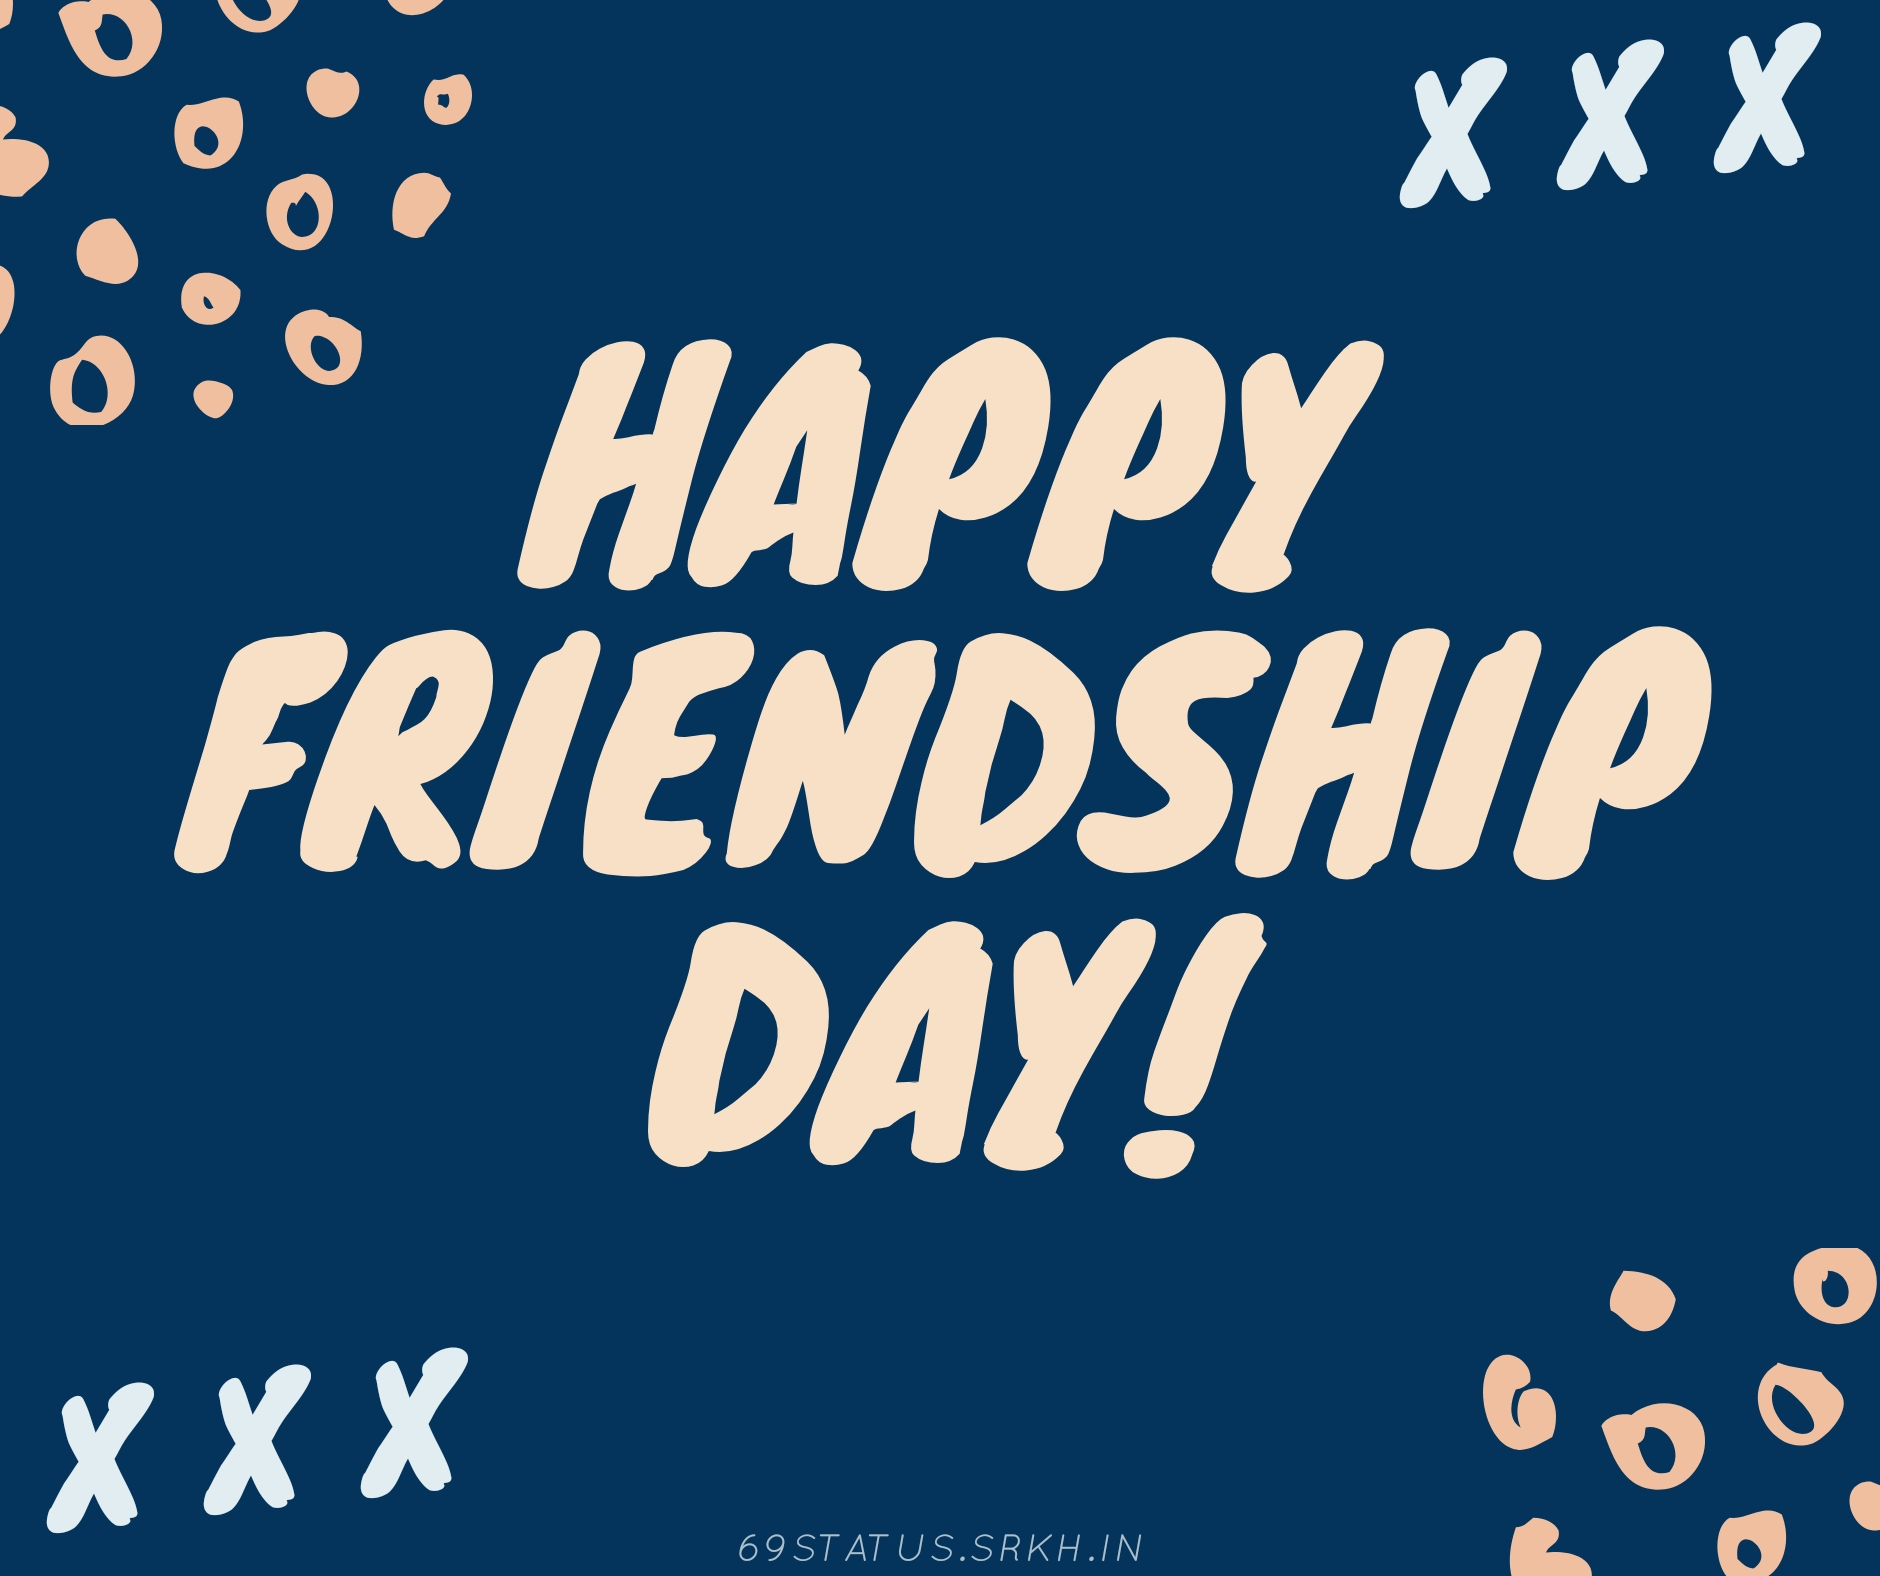 Happy Friendship Day Image in HD full HD free download.